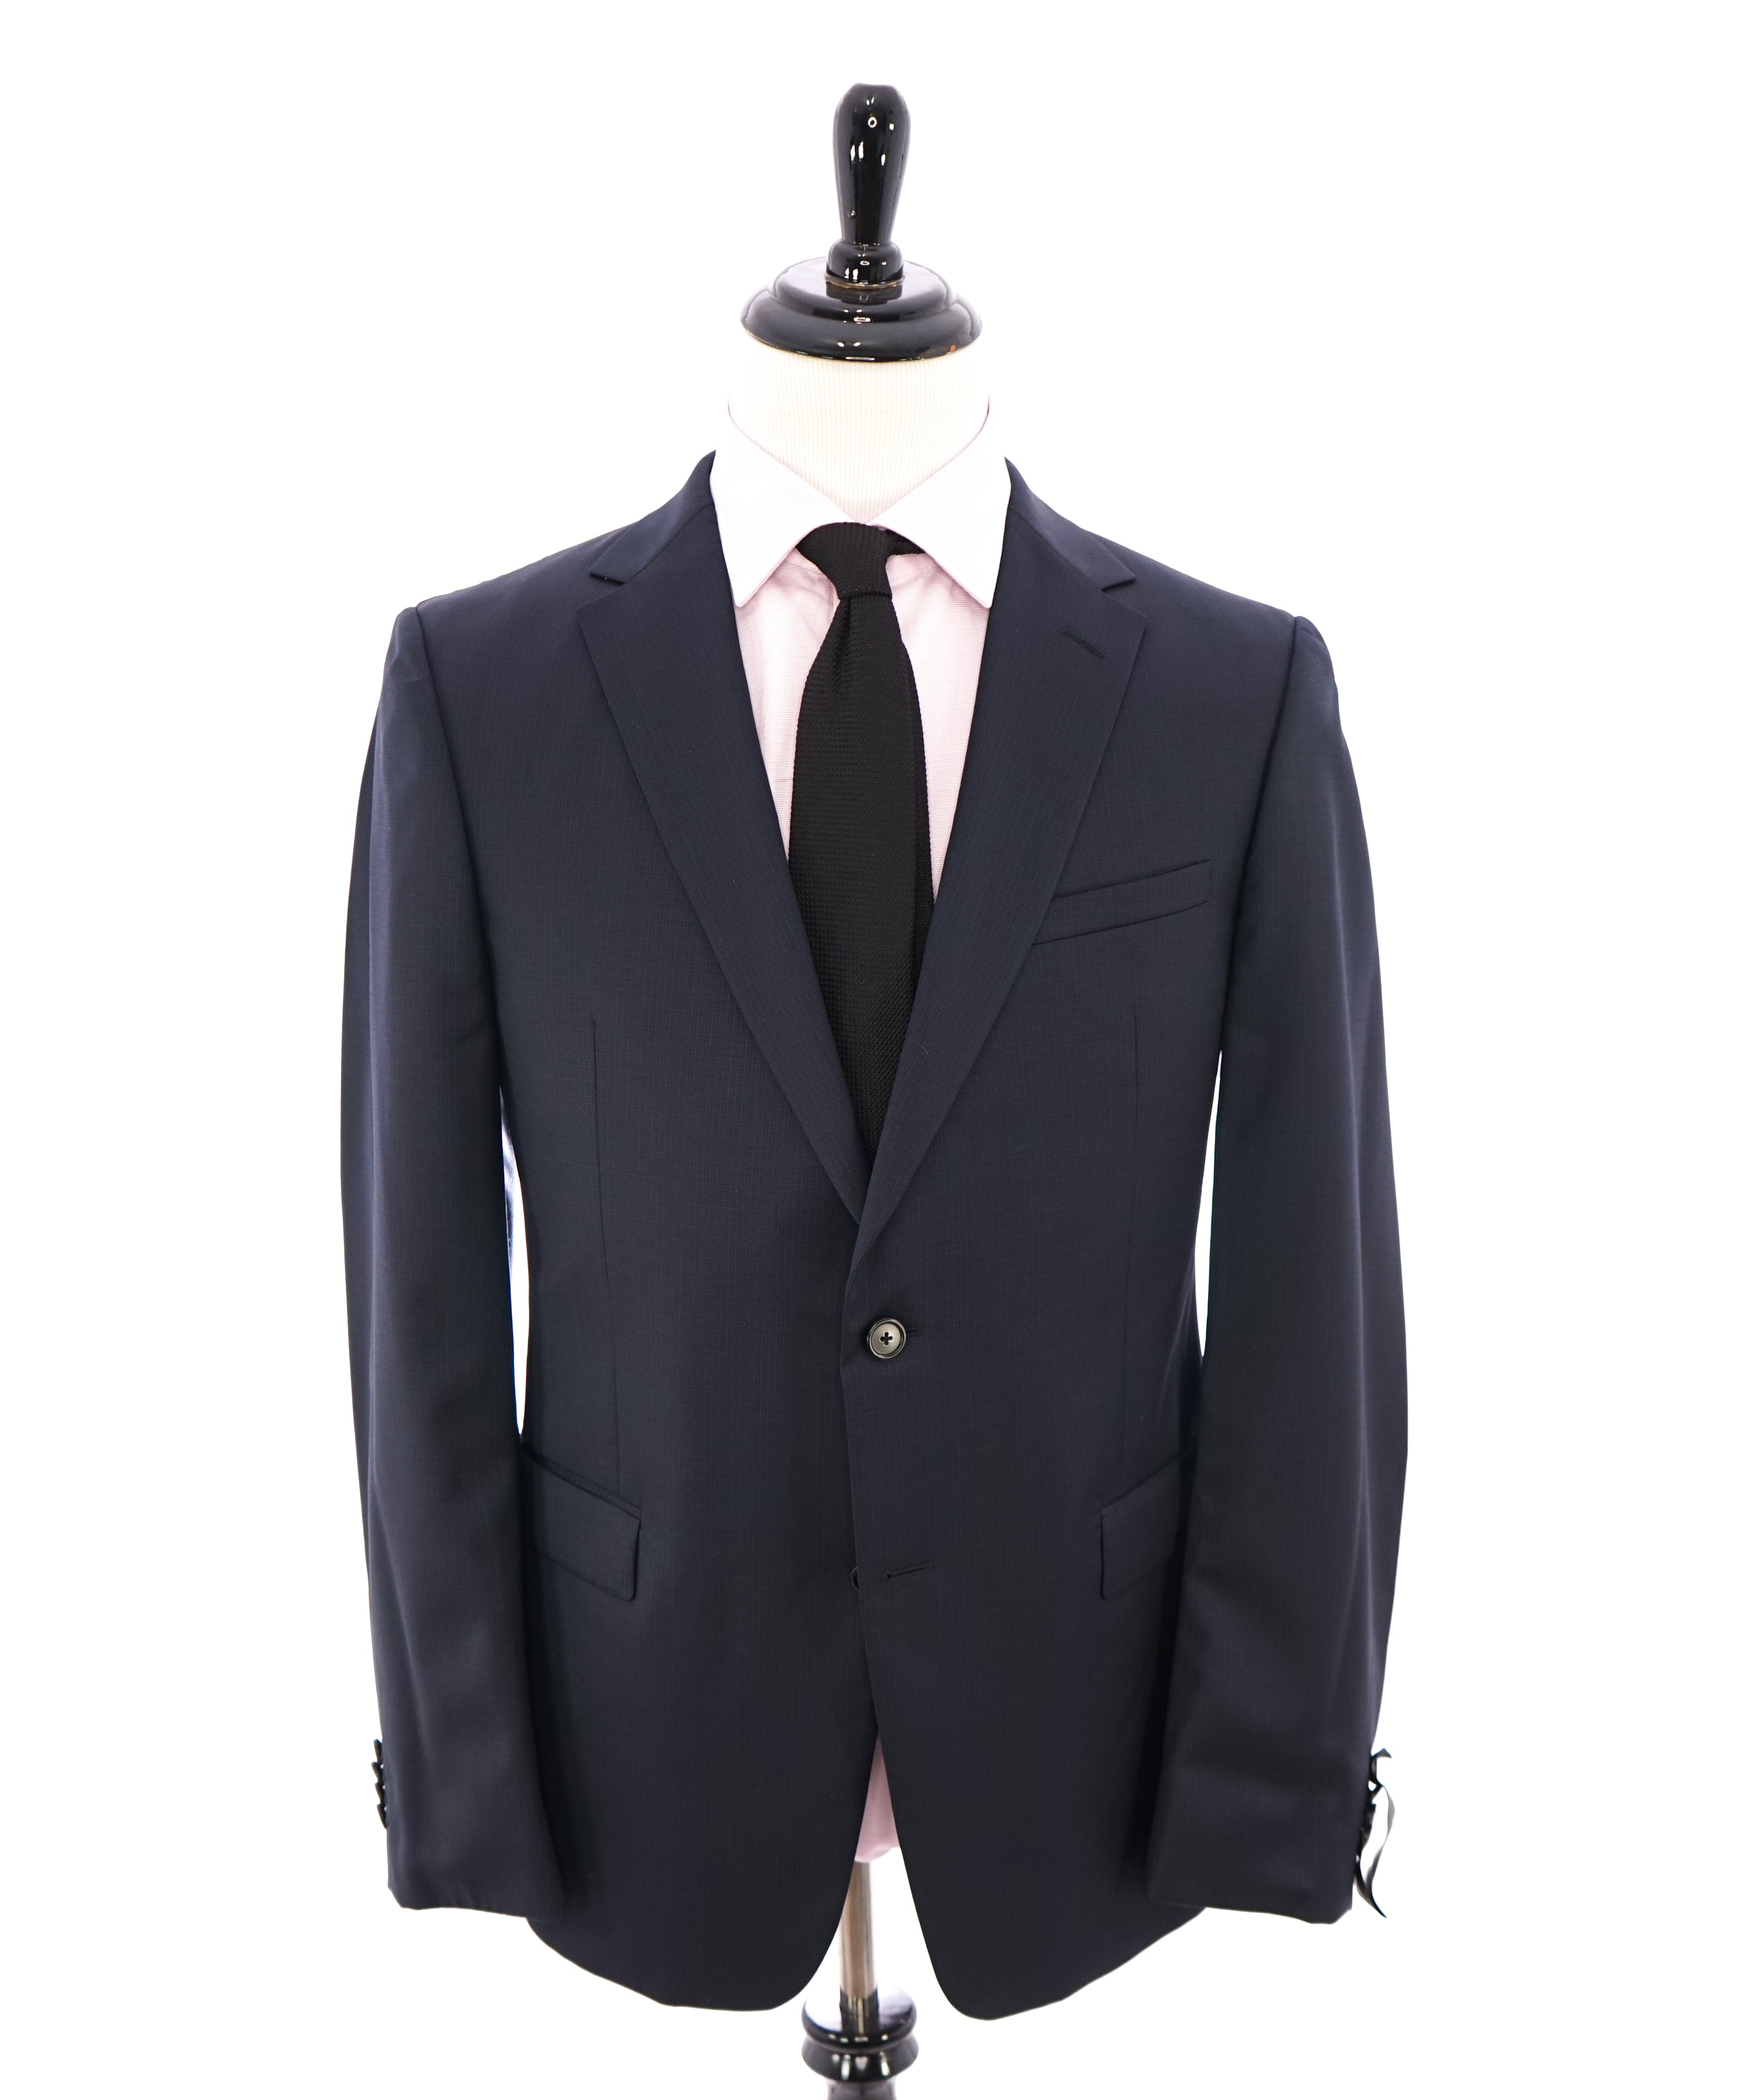 92c421f44976b Z ZEGNA - Navy Blue Micro Check Fabric Drop 8 Wool Suit - 44R – Luxe ...